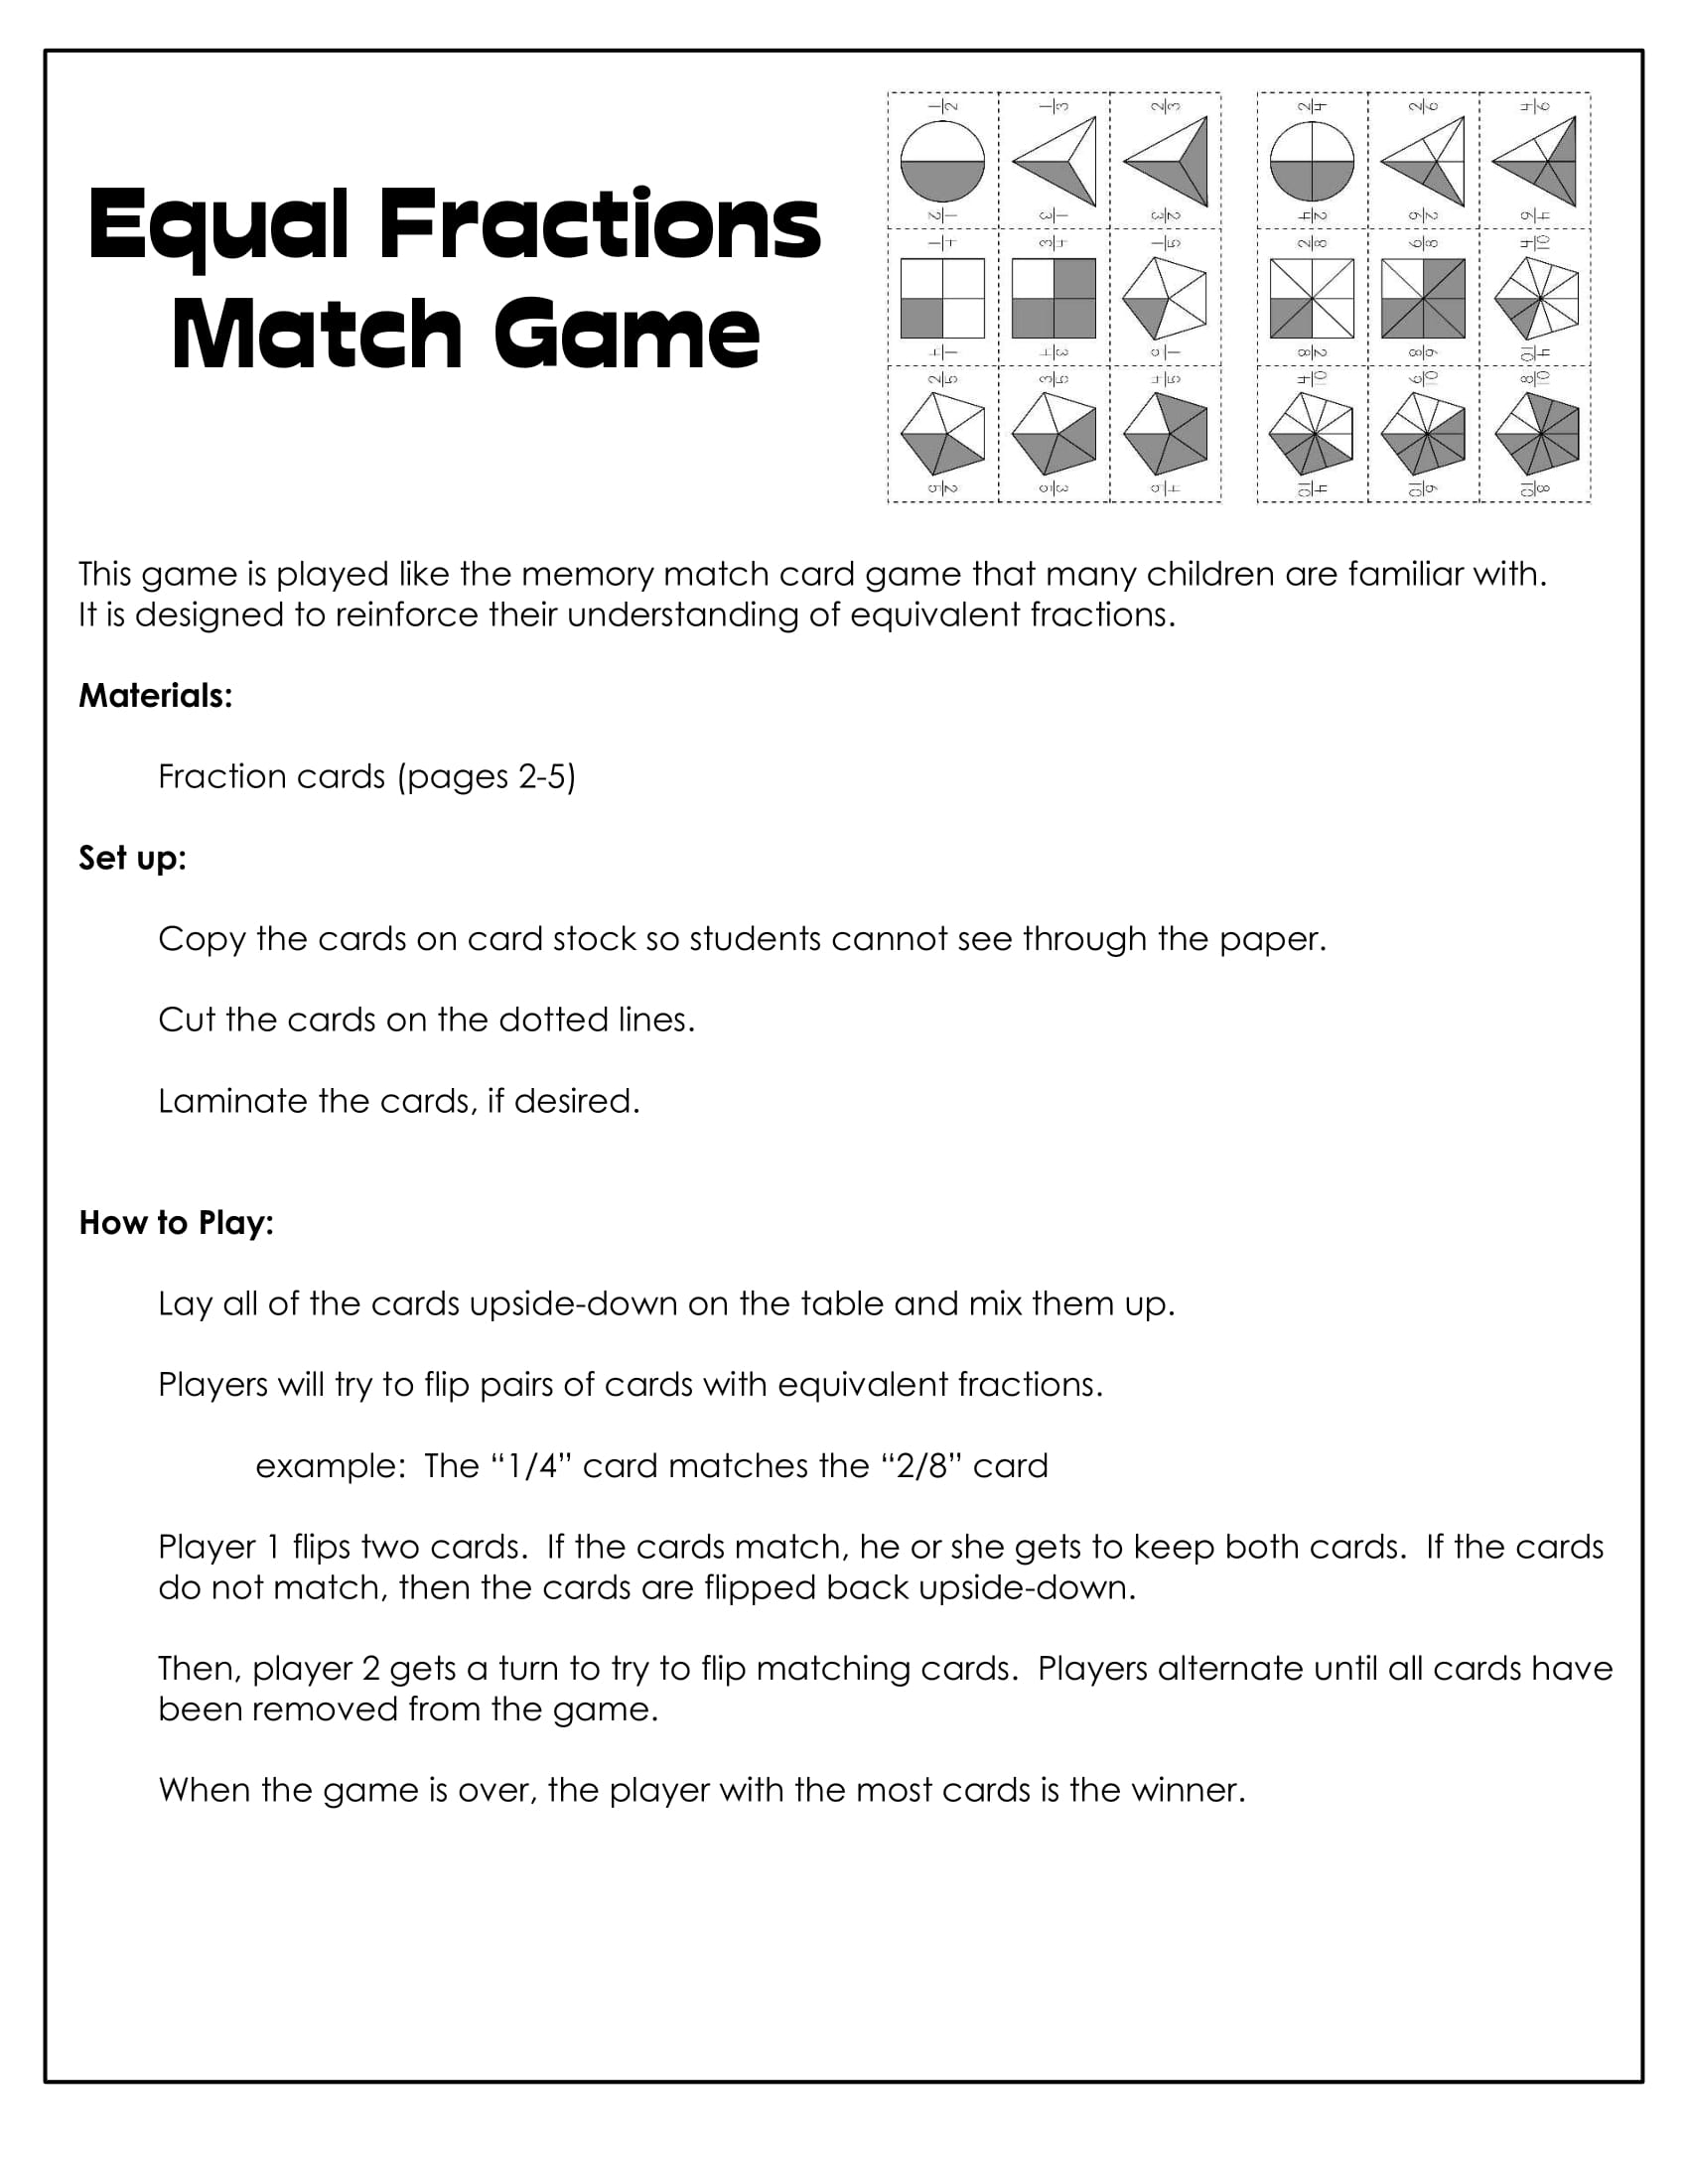 equal fractions match game sample worksheet